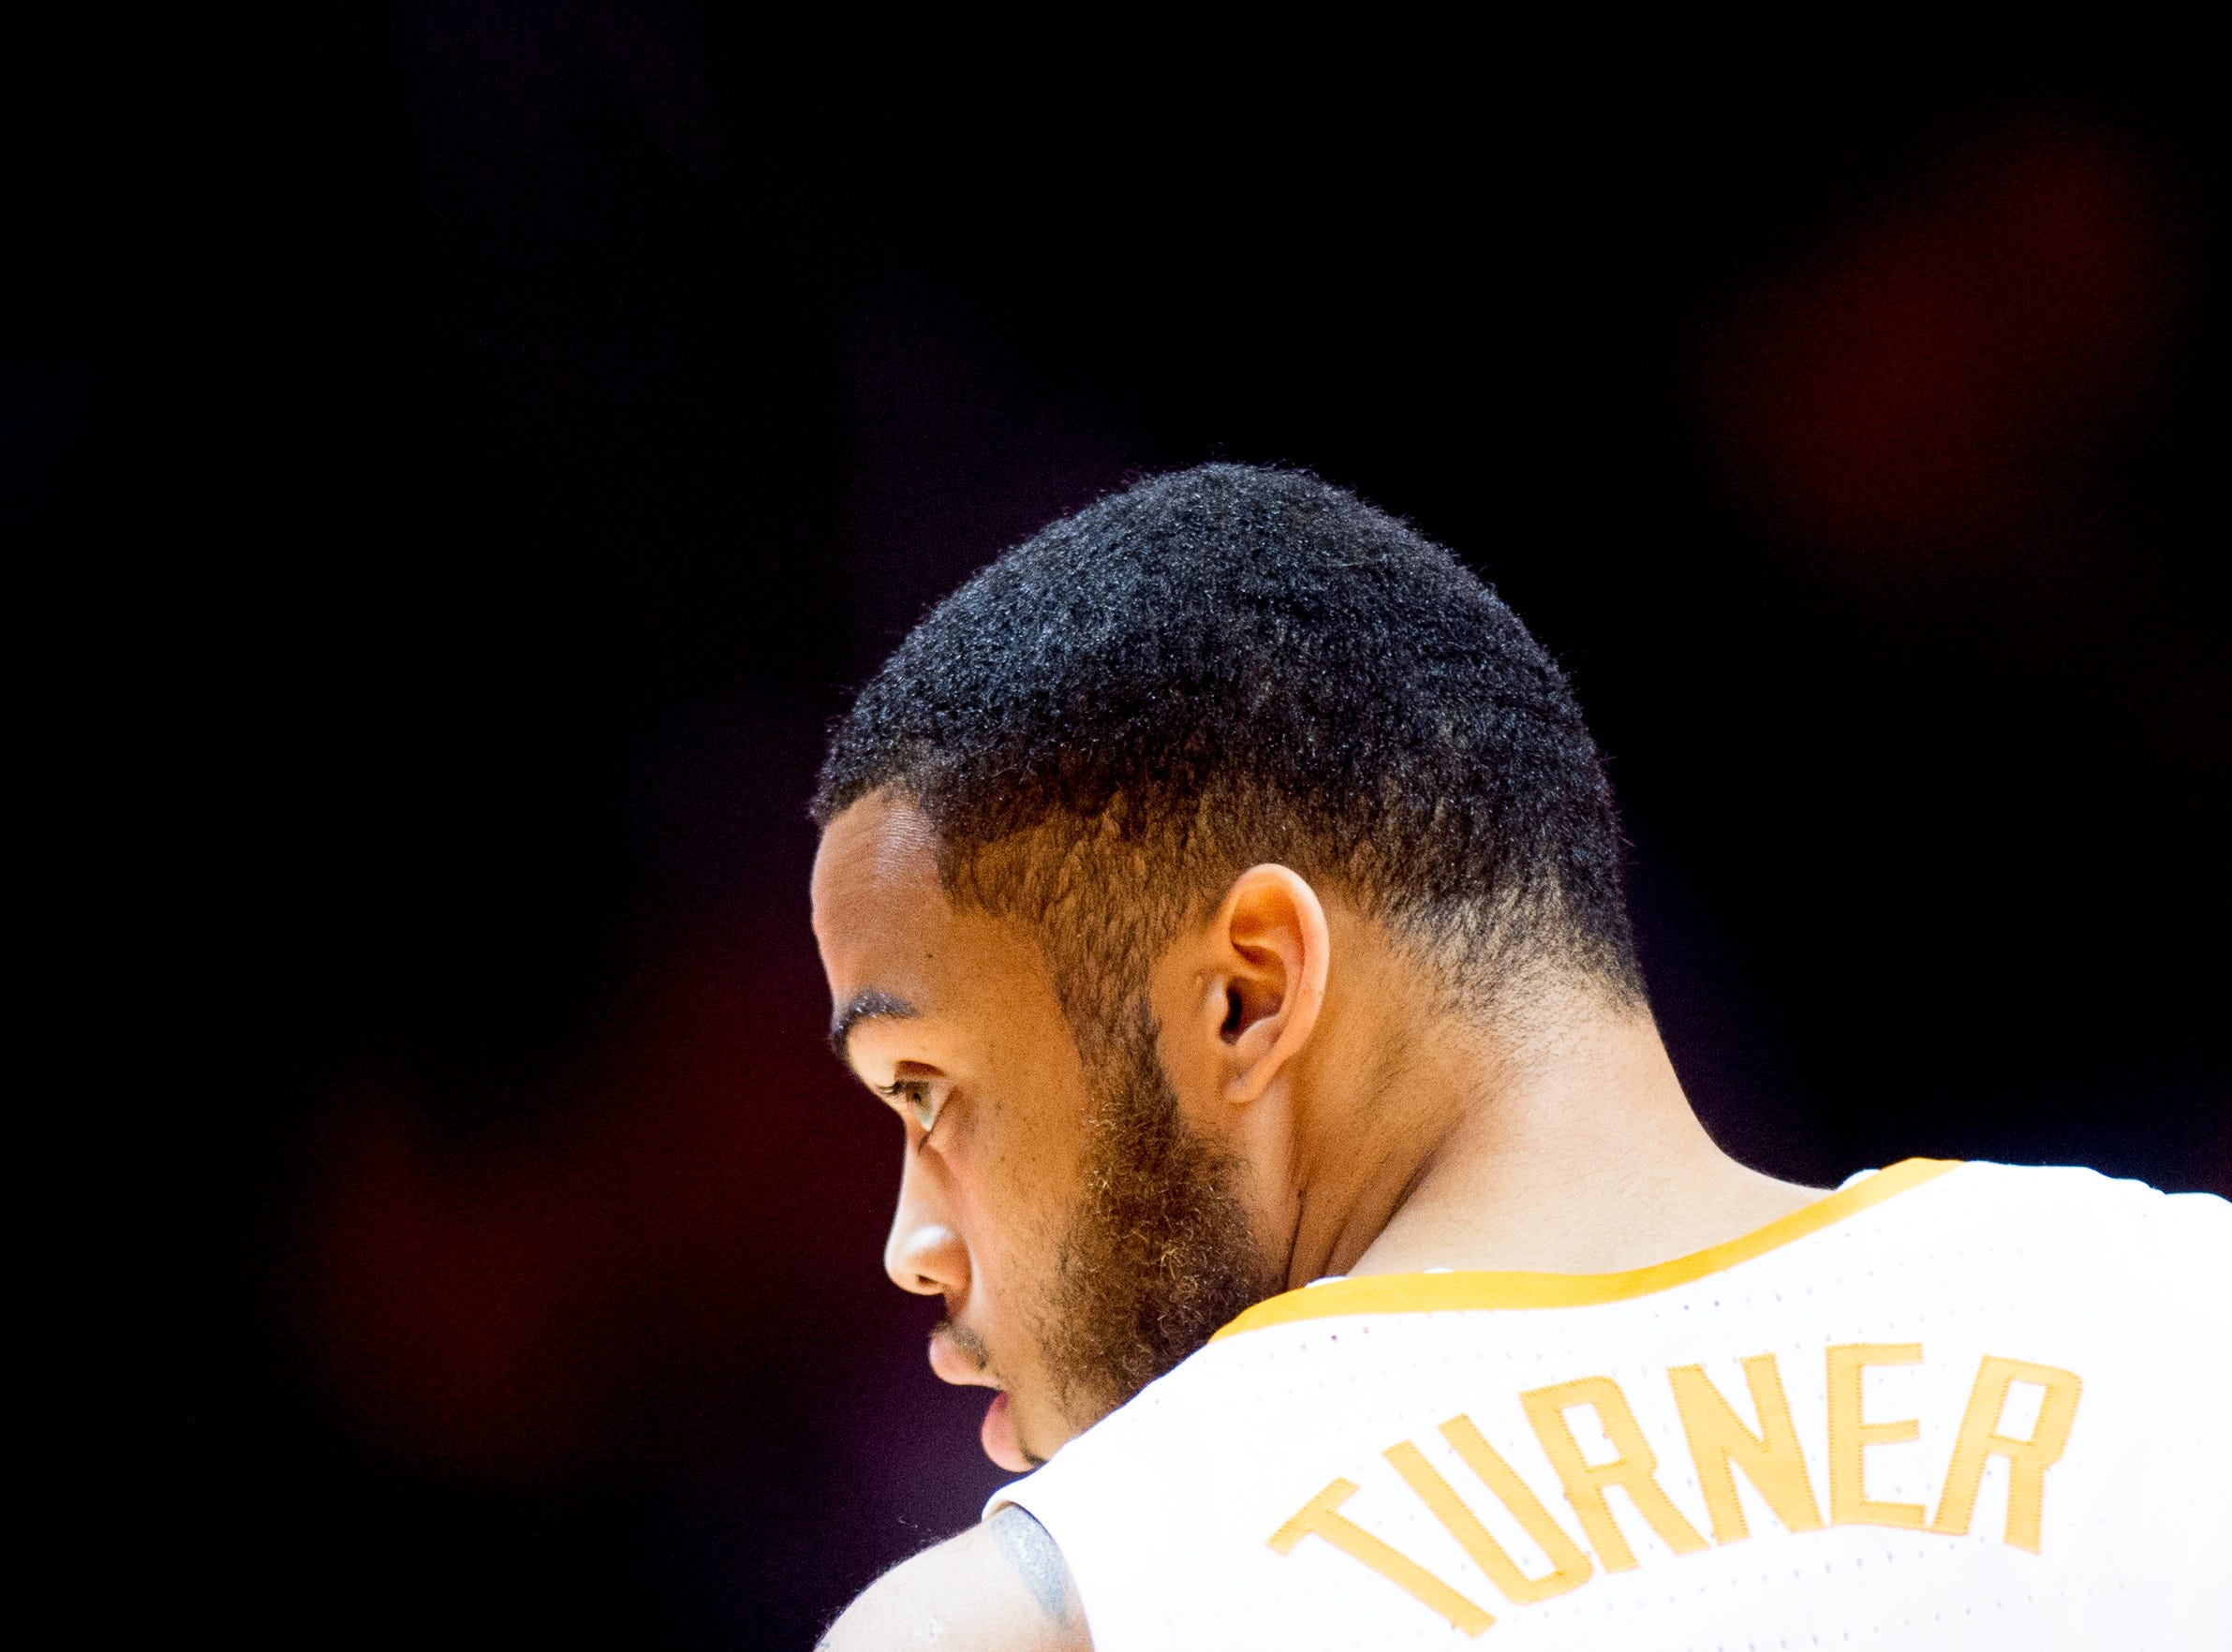 Tennessee guard Lamonte Turner (1) walks on the court during a game between Tennessee and Tusculum at Thompson-Boling Arena in Knoxville, Tennessee on Wednesday, October 31, 2018.